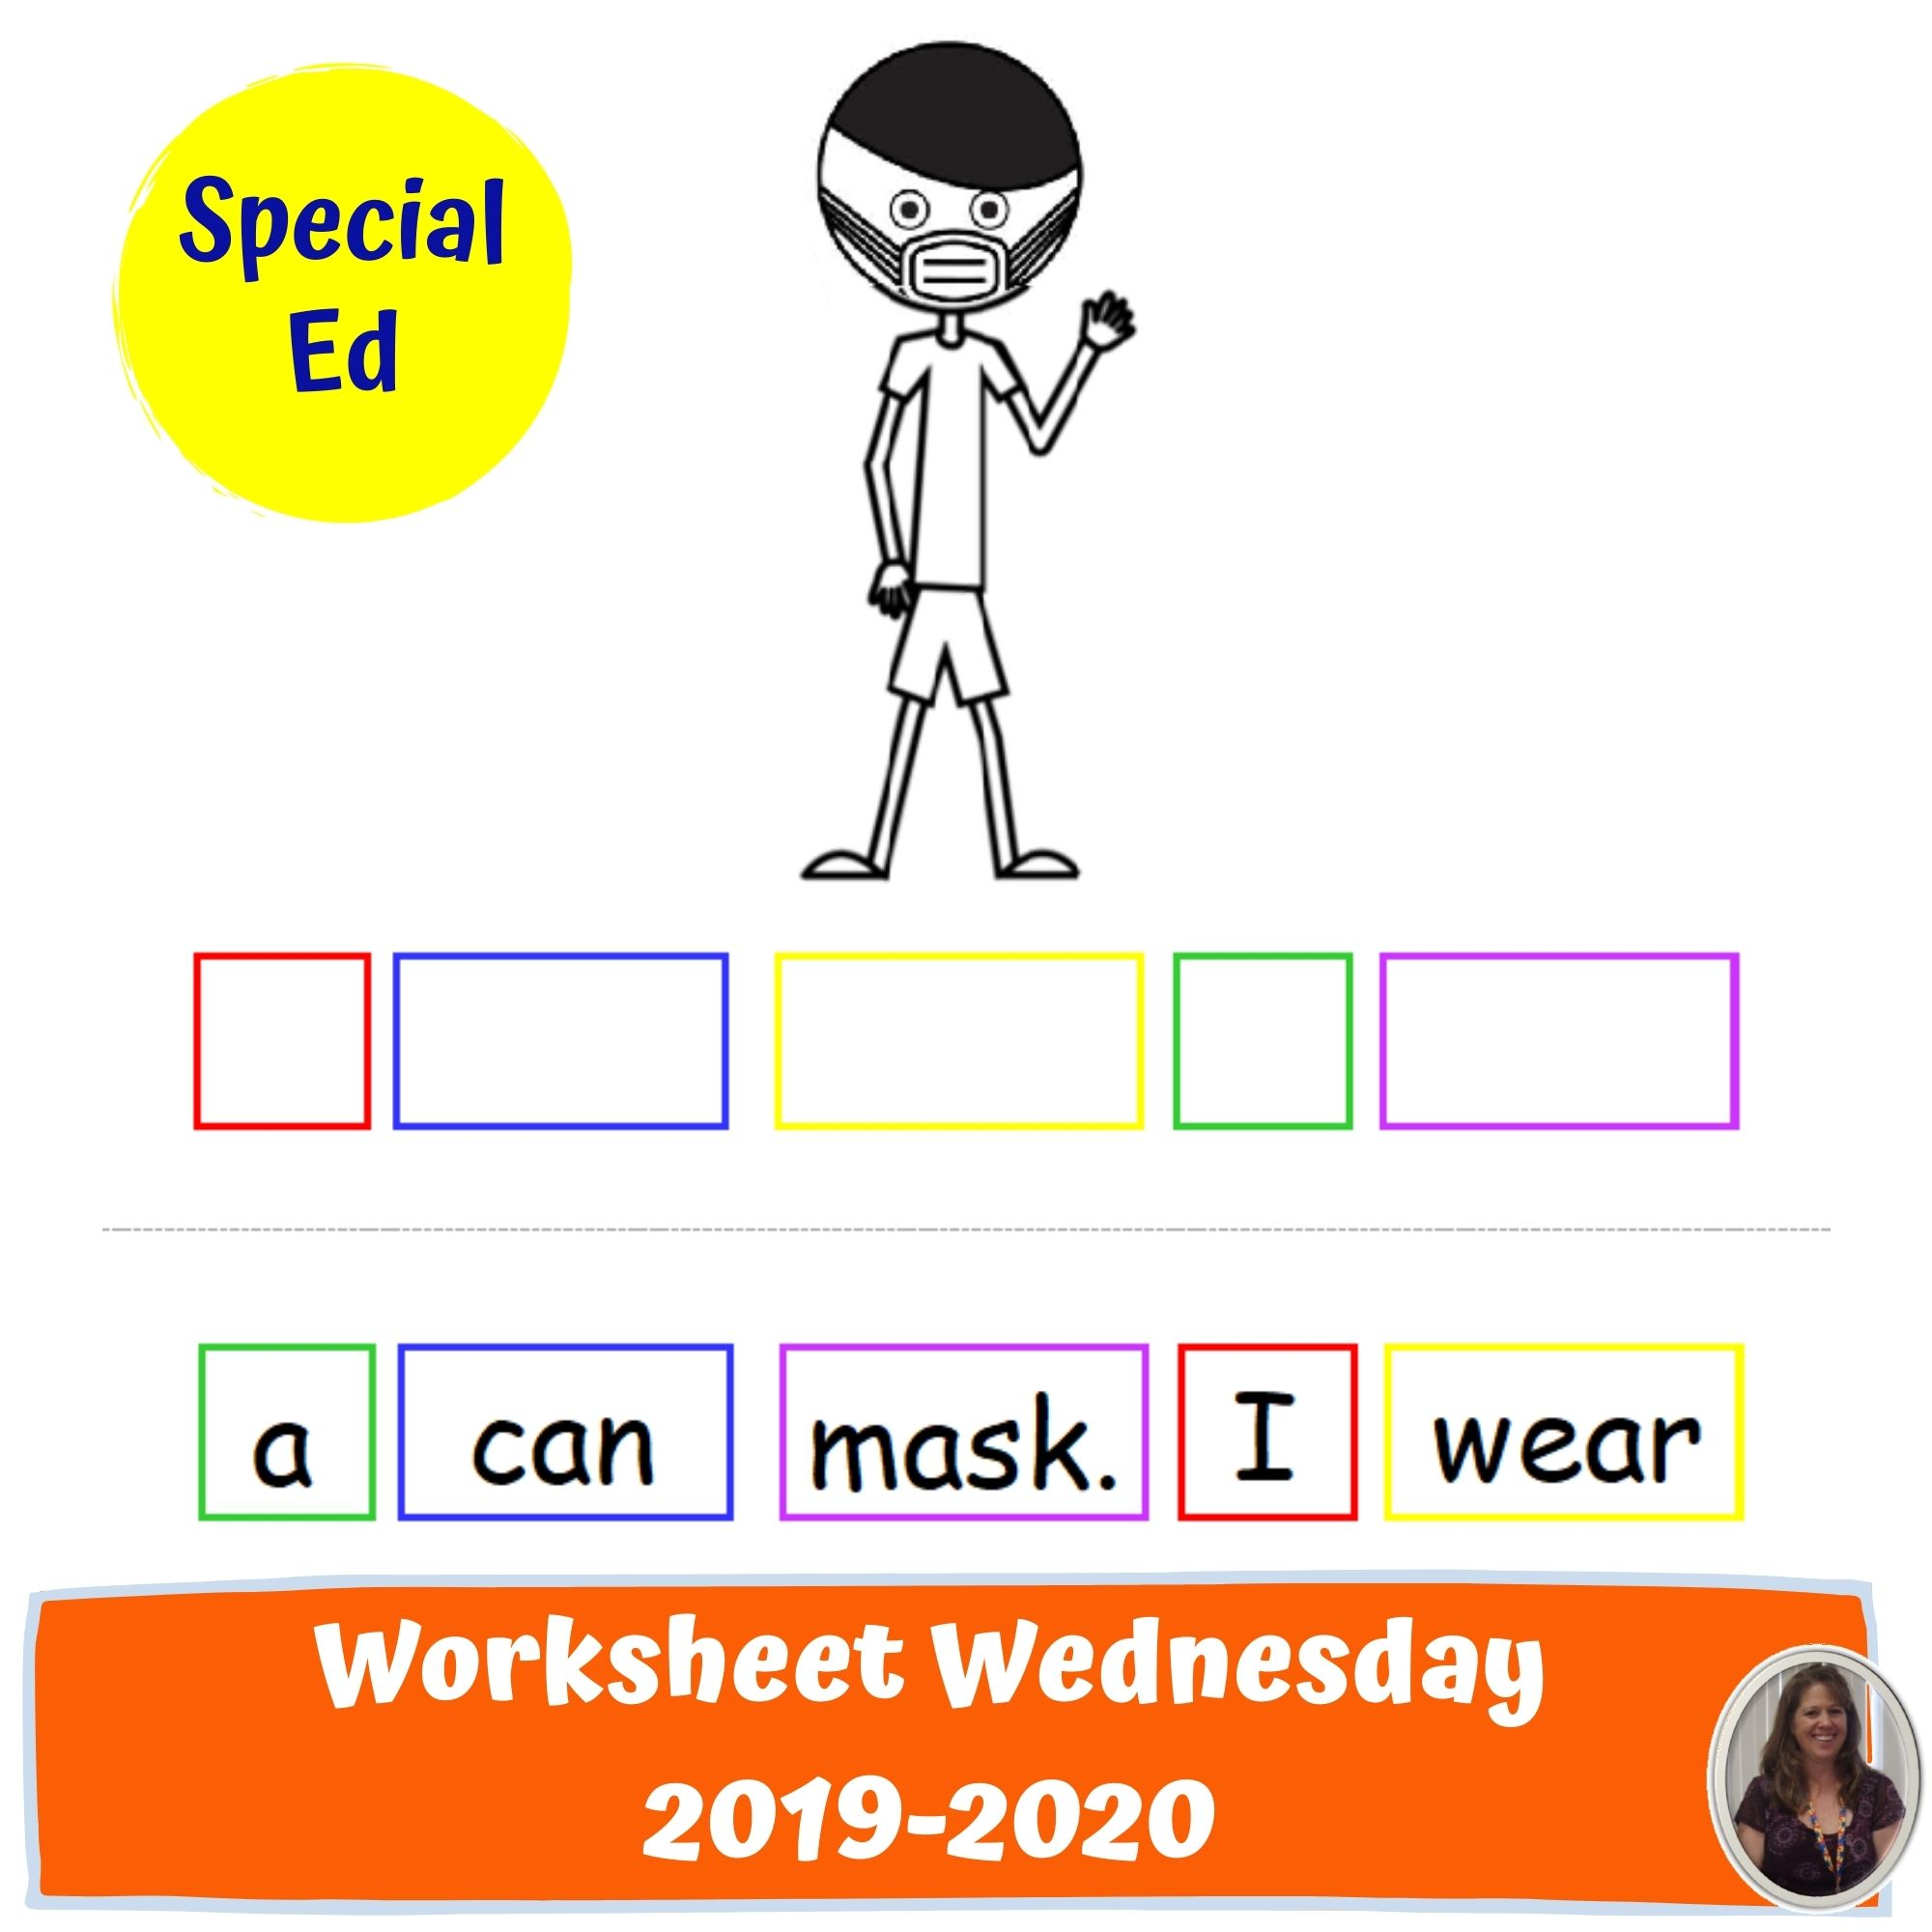 One Year Of Wednesday Worksheets For Special Education